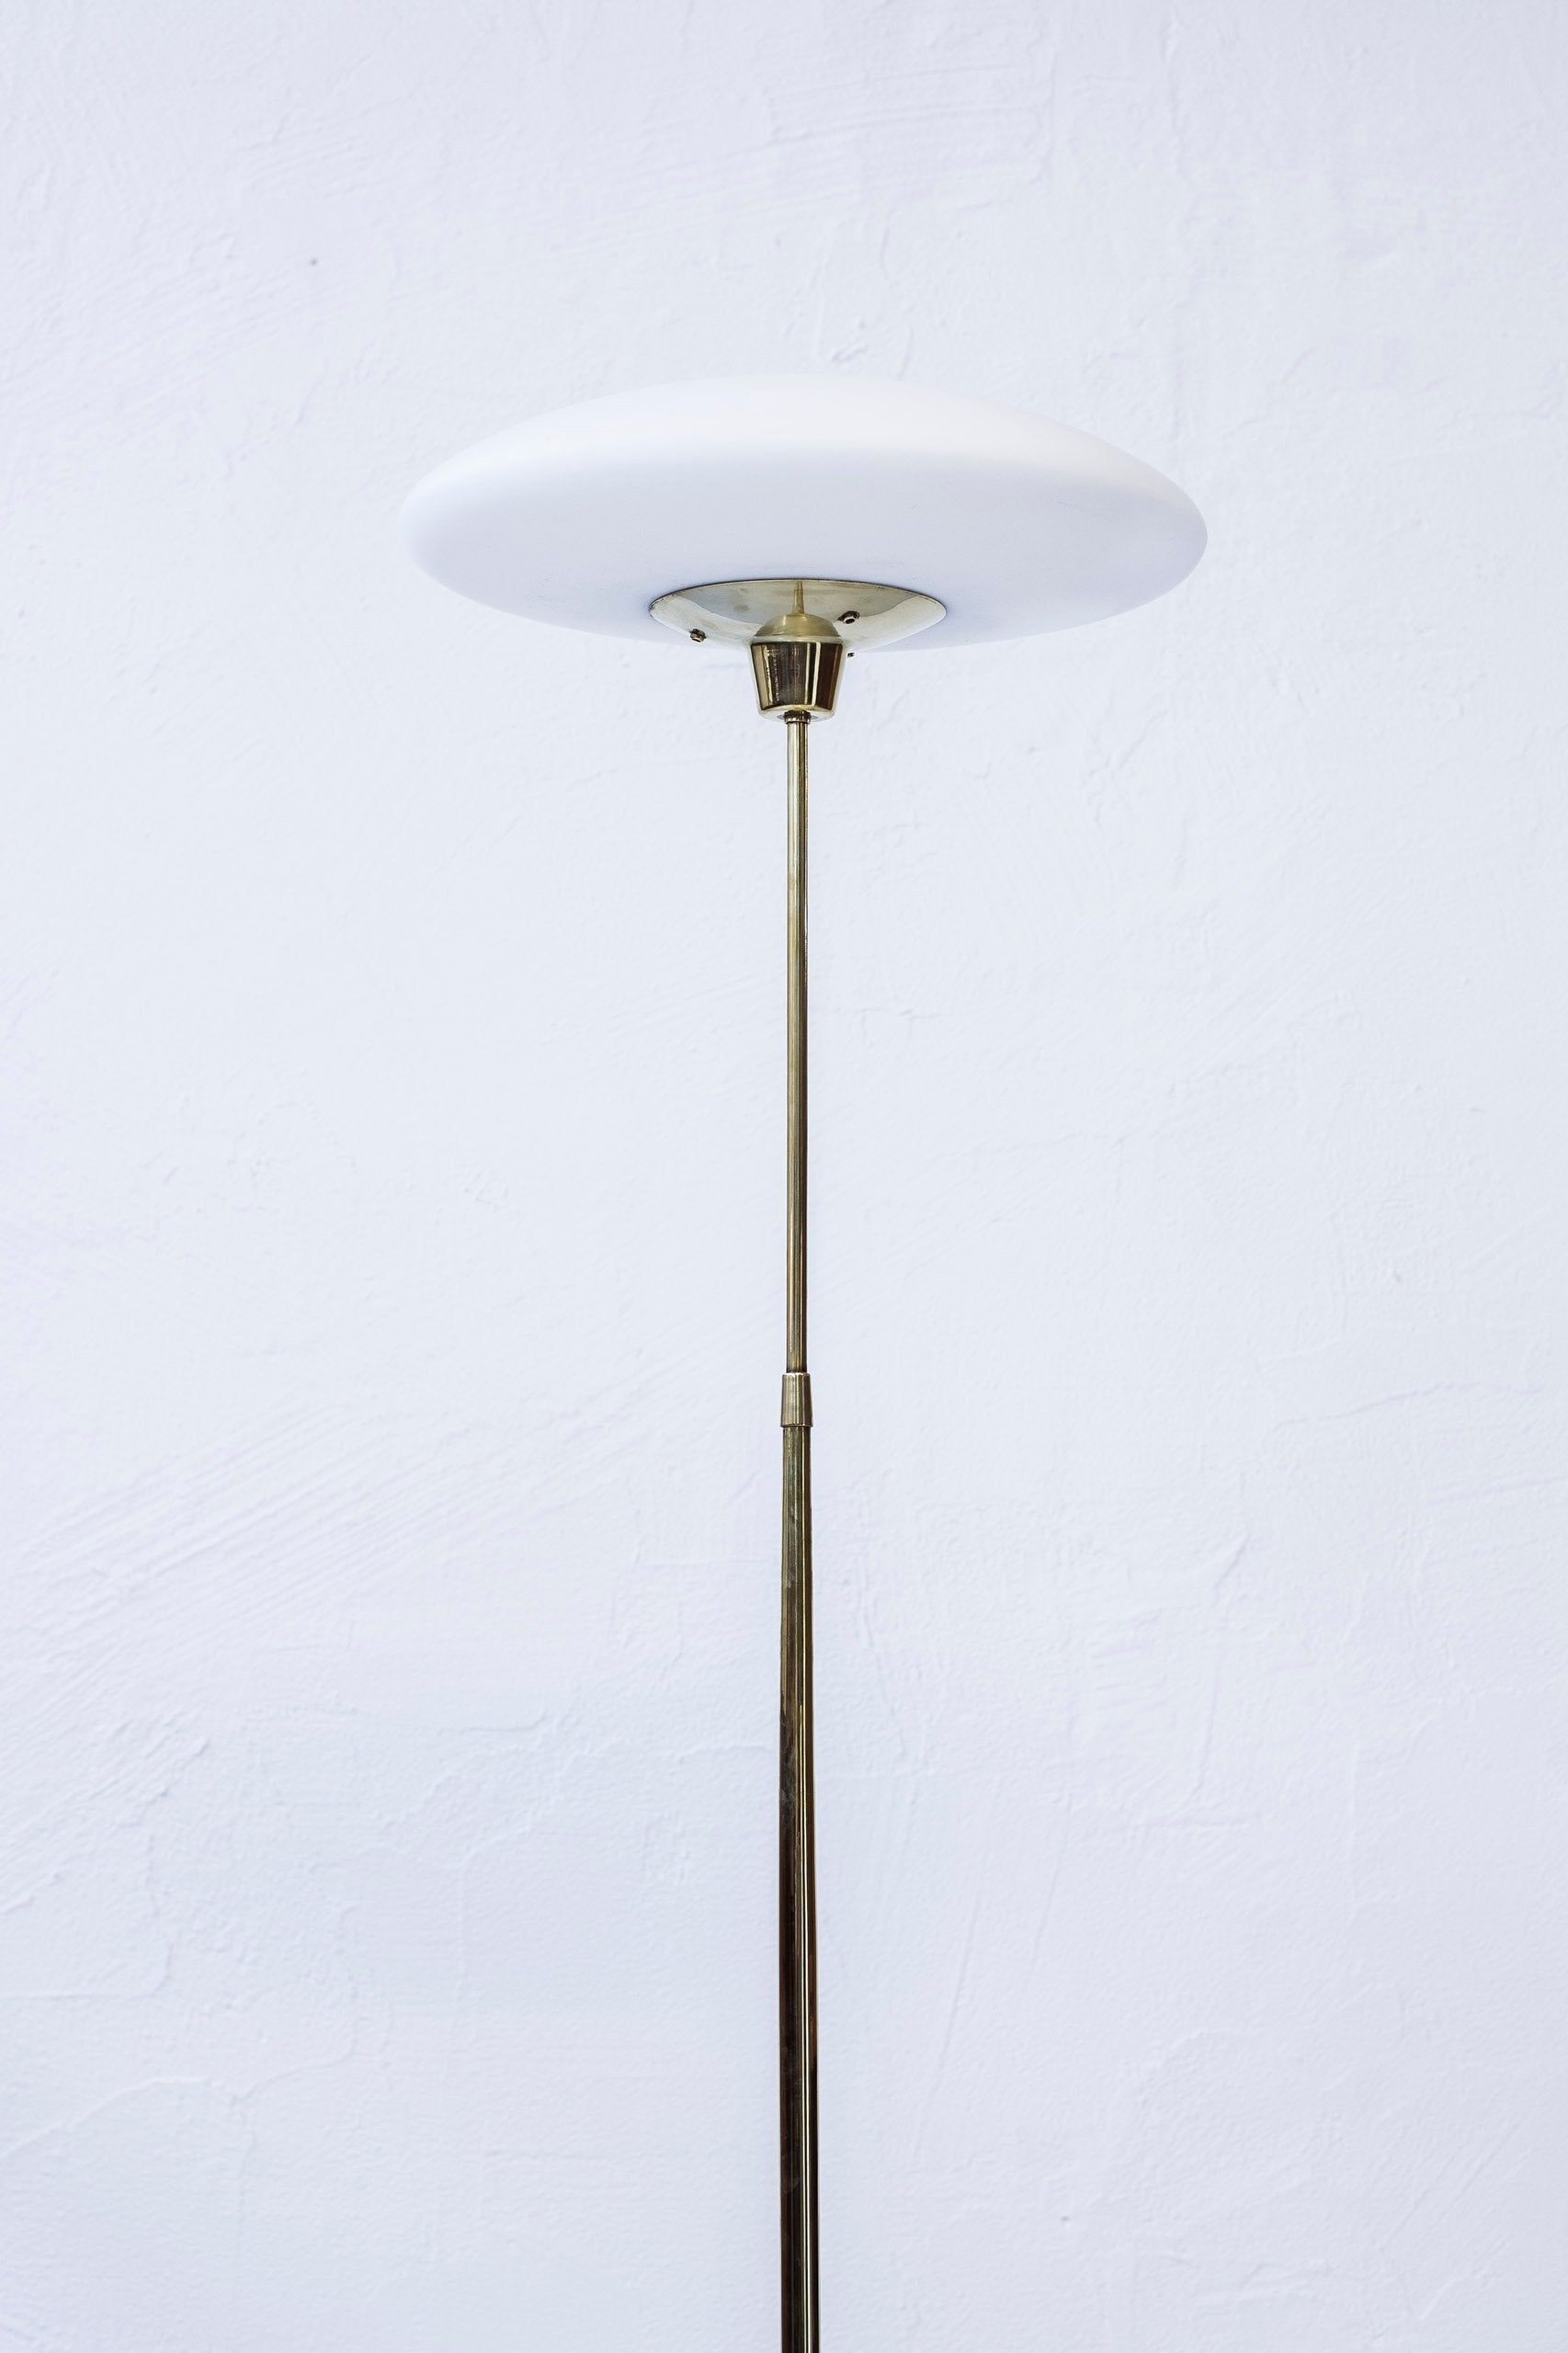 1950s Floor lamp by ASEA belysning